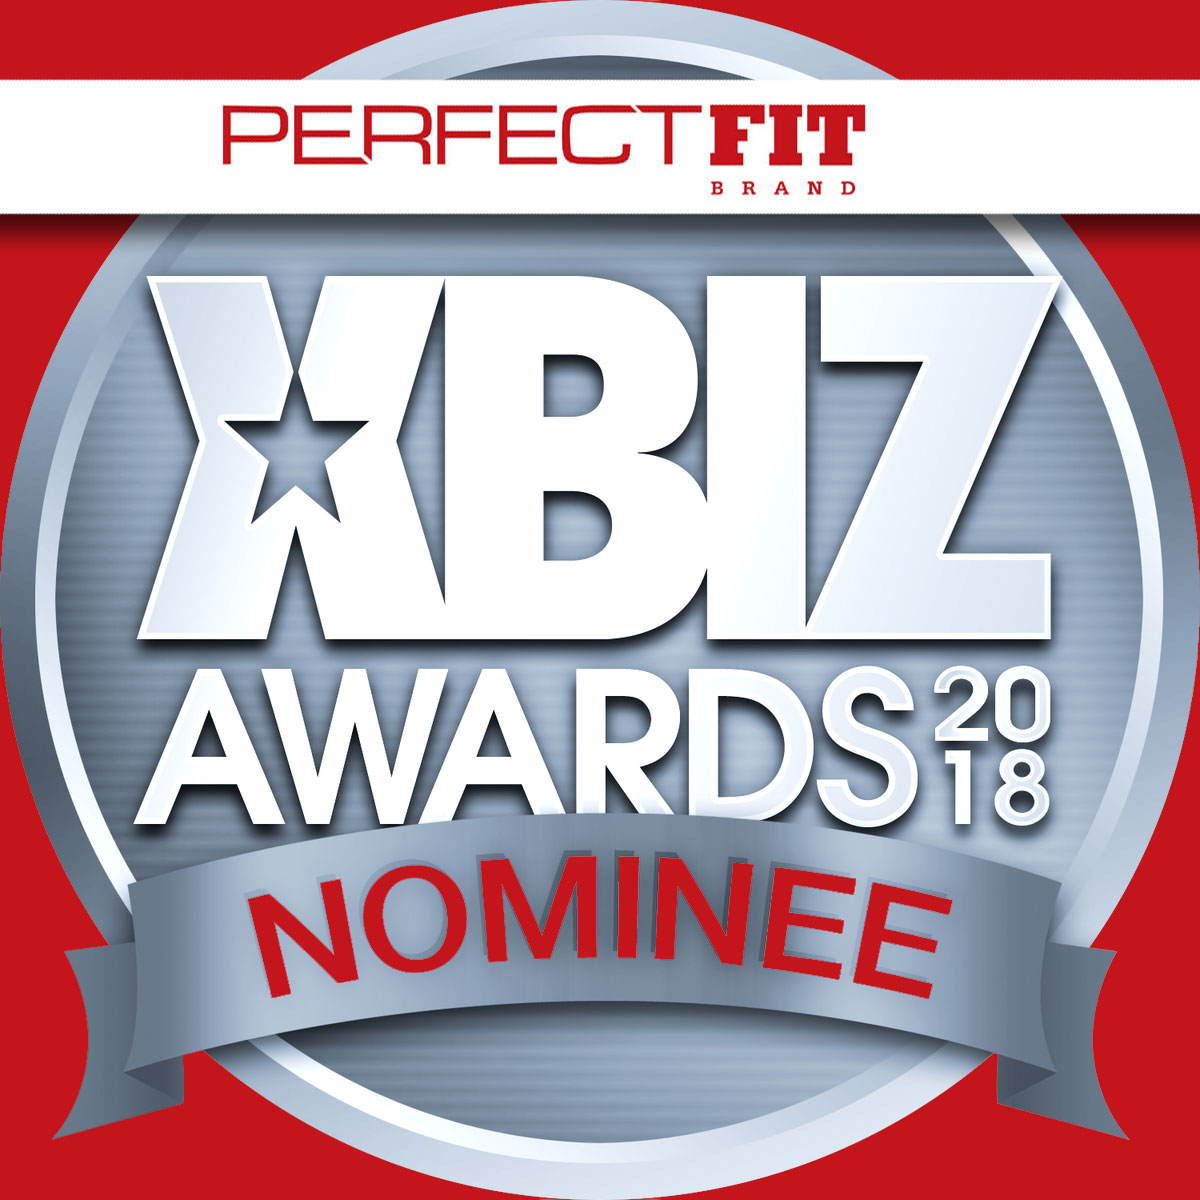 XBIZ Award Nomination